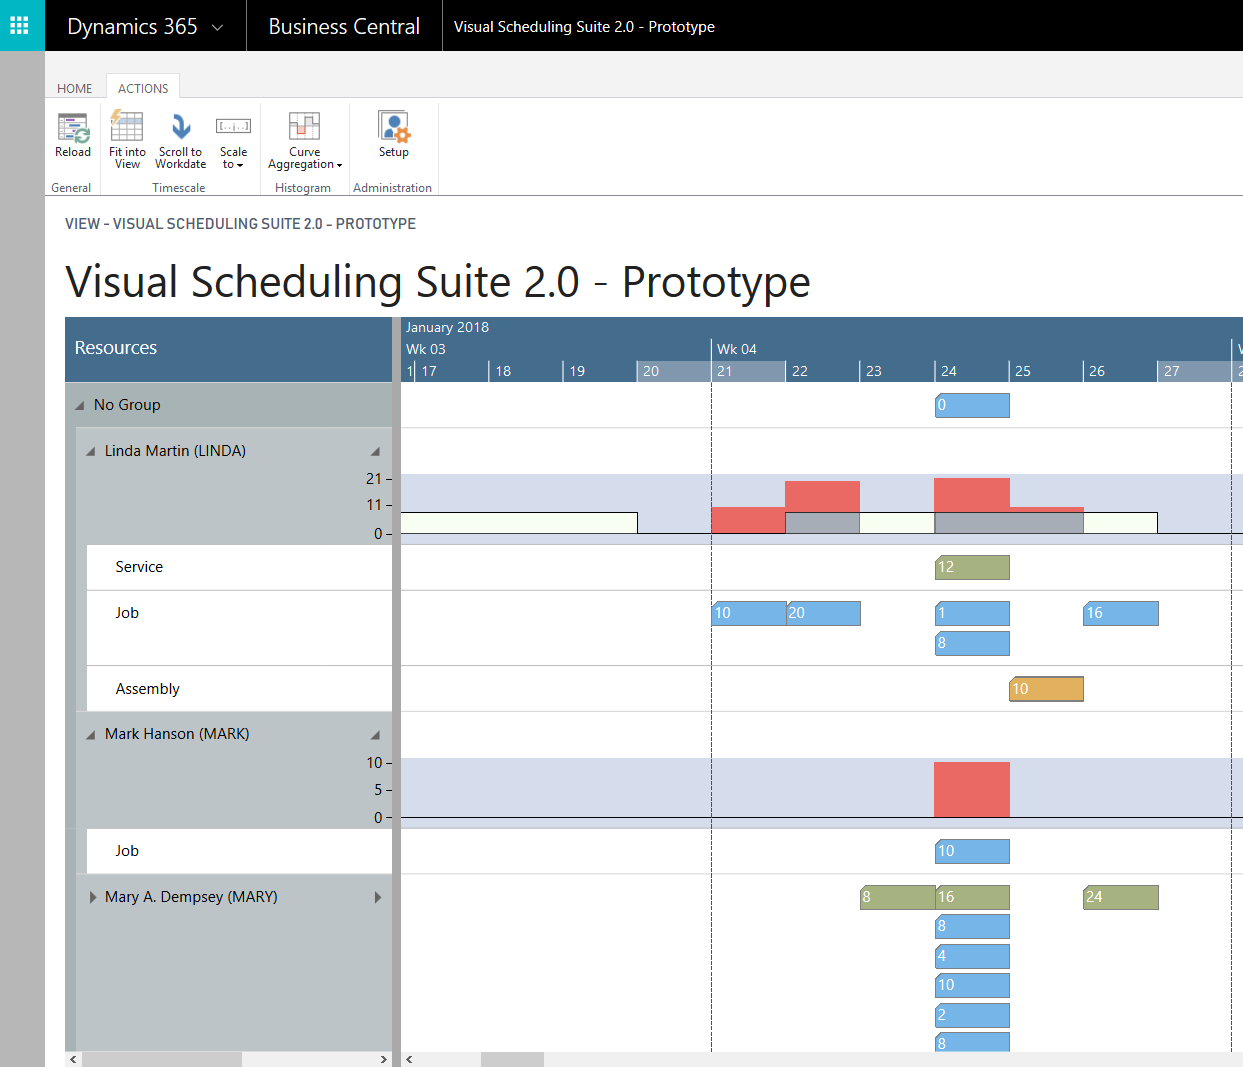 Visual Scheduling Suite 2.0